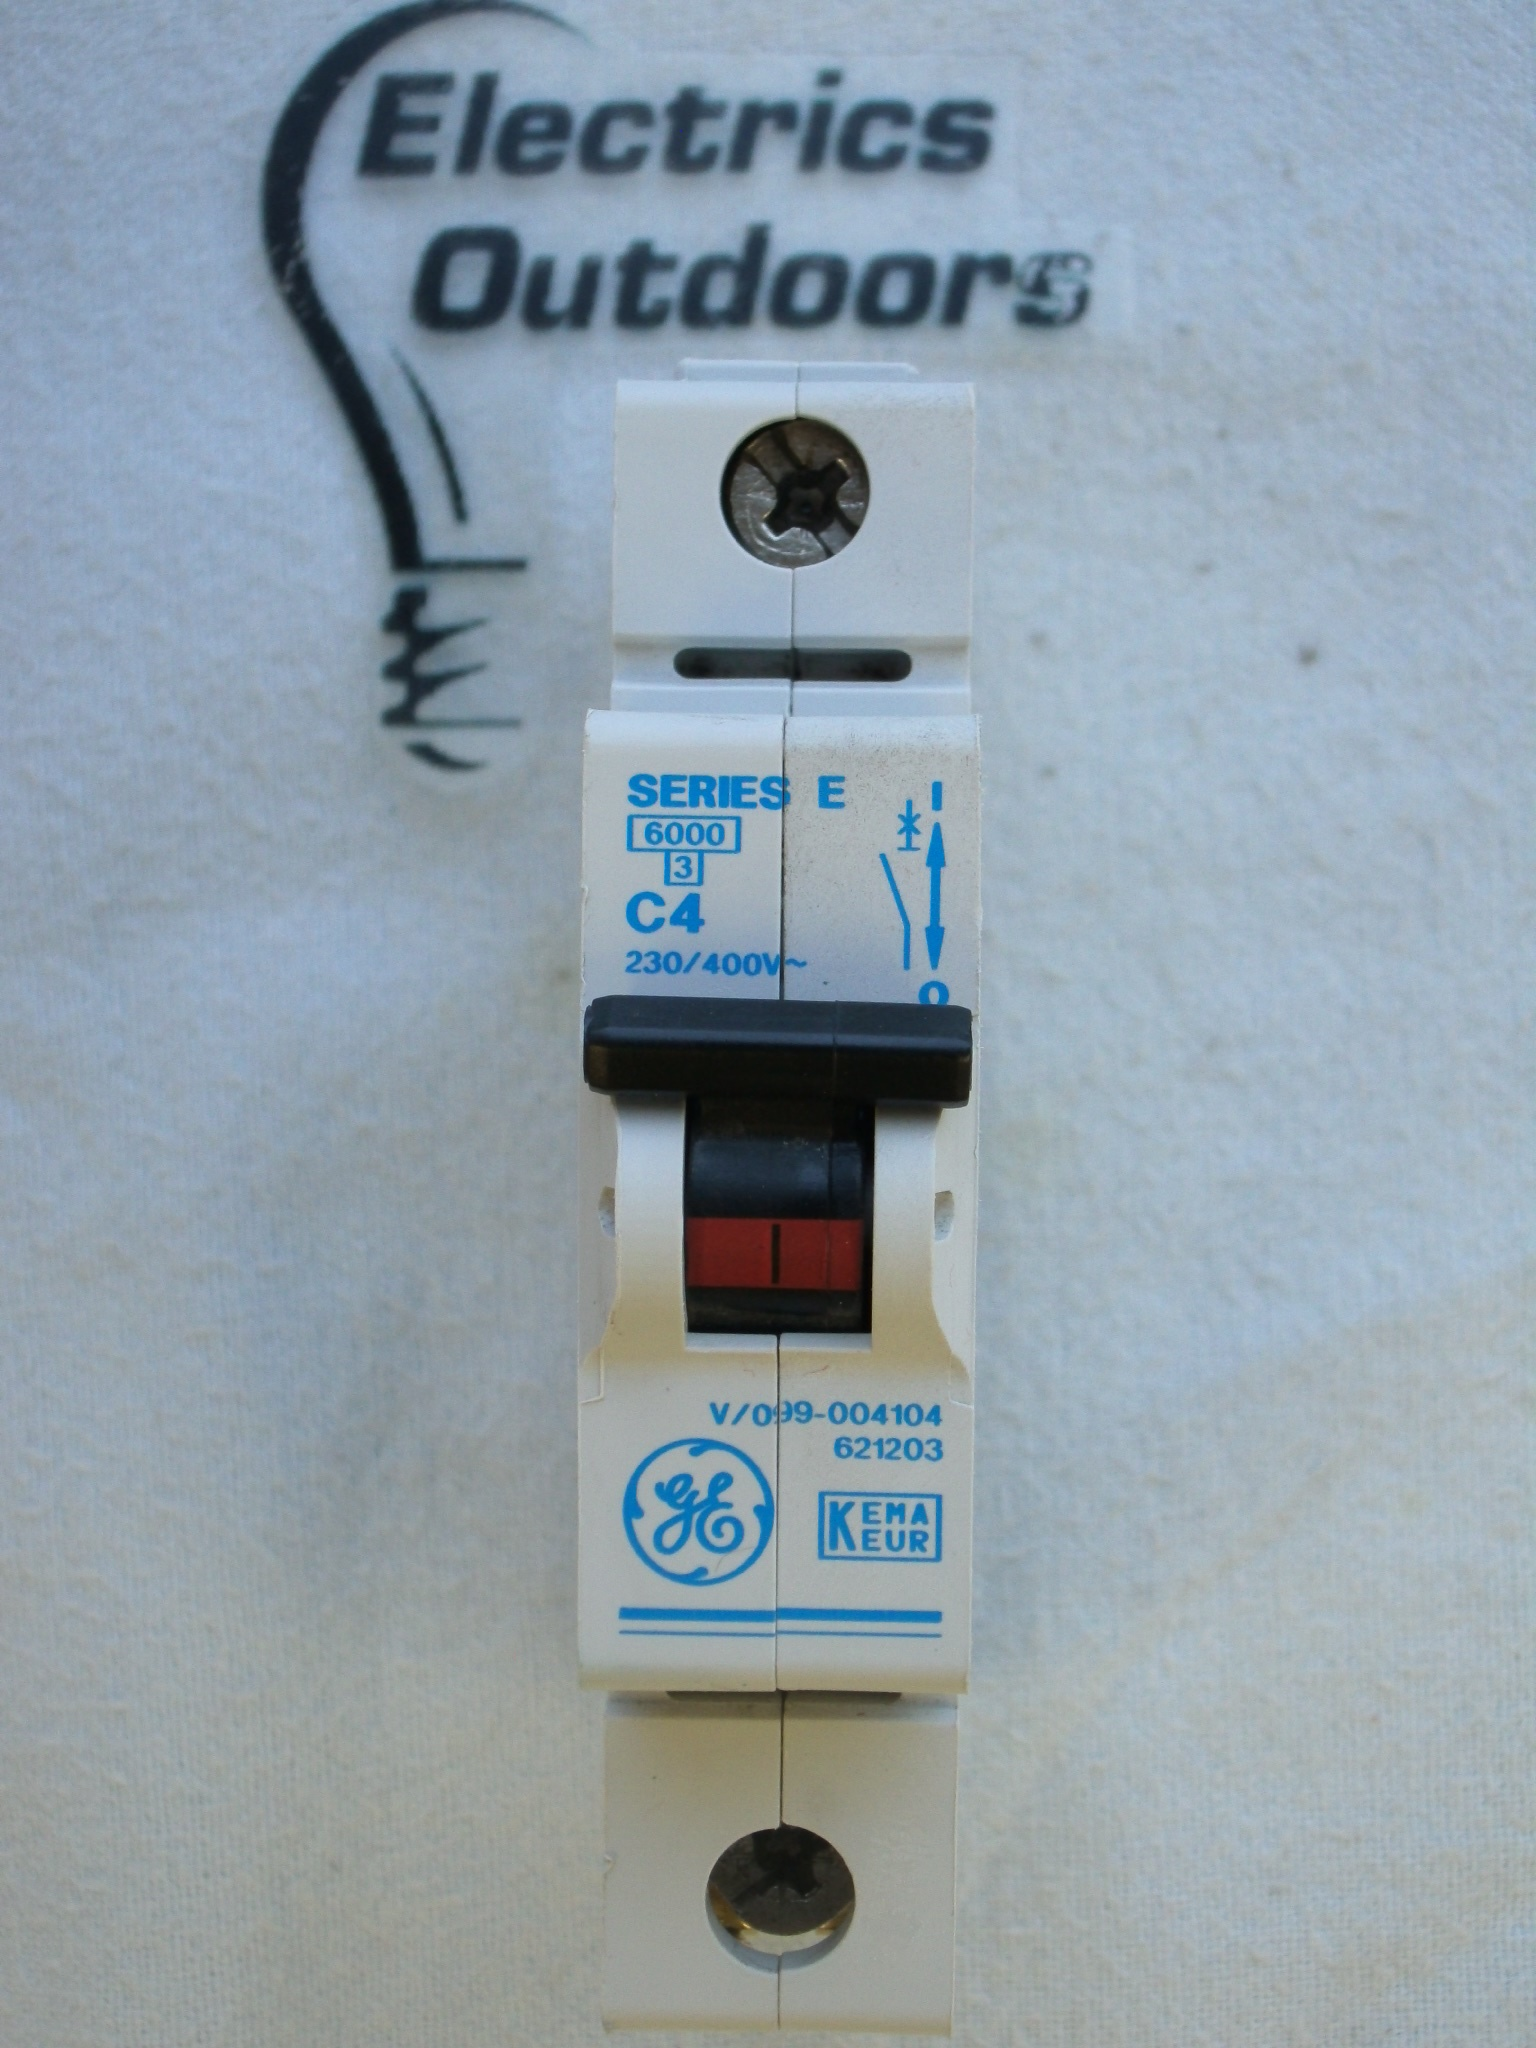 GENERAL 4 AMP TYPE C 6 kA MCB CIRCUIT BREAKER SERIES E 621023 V/099-004104